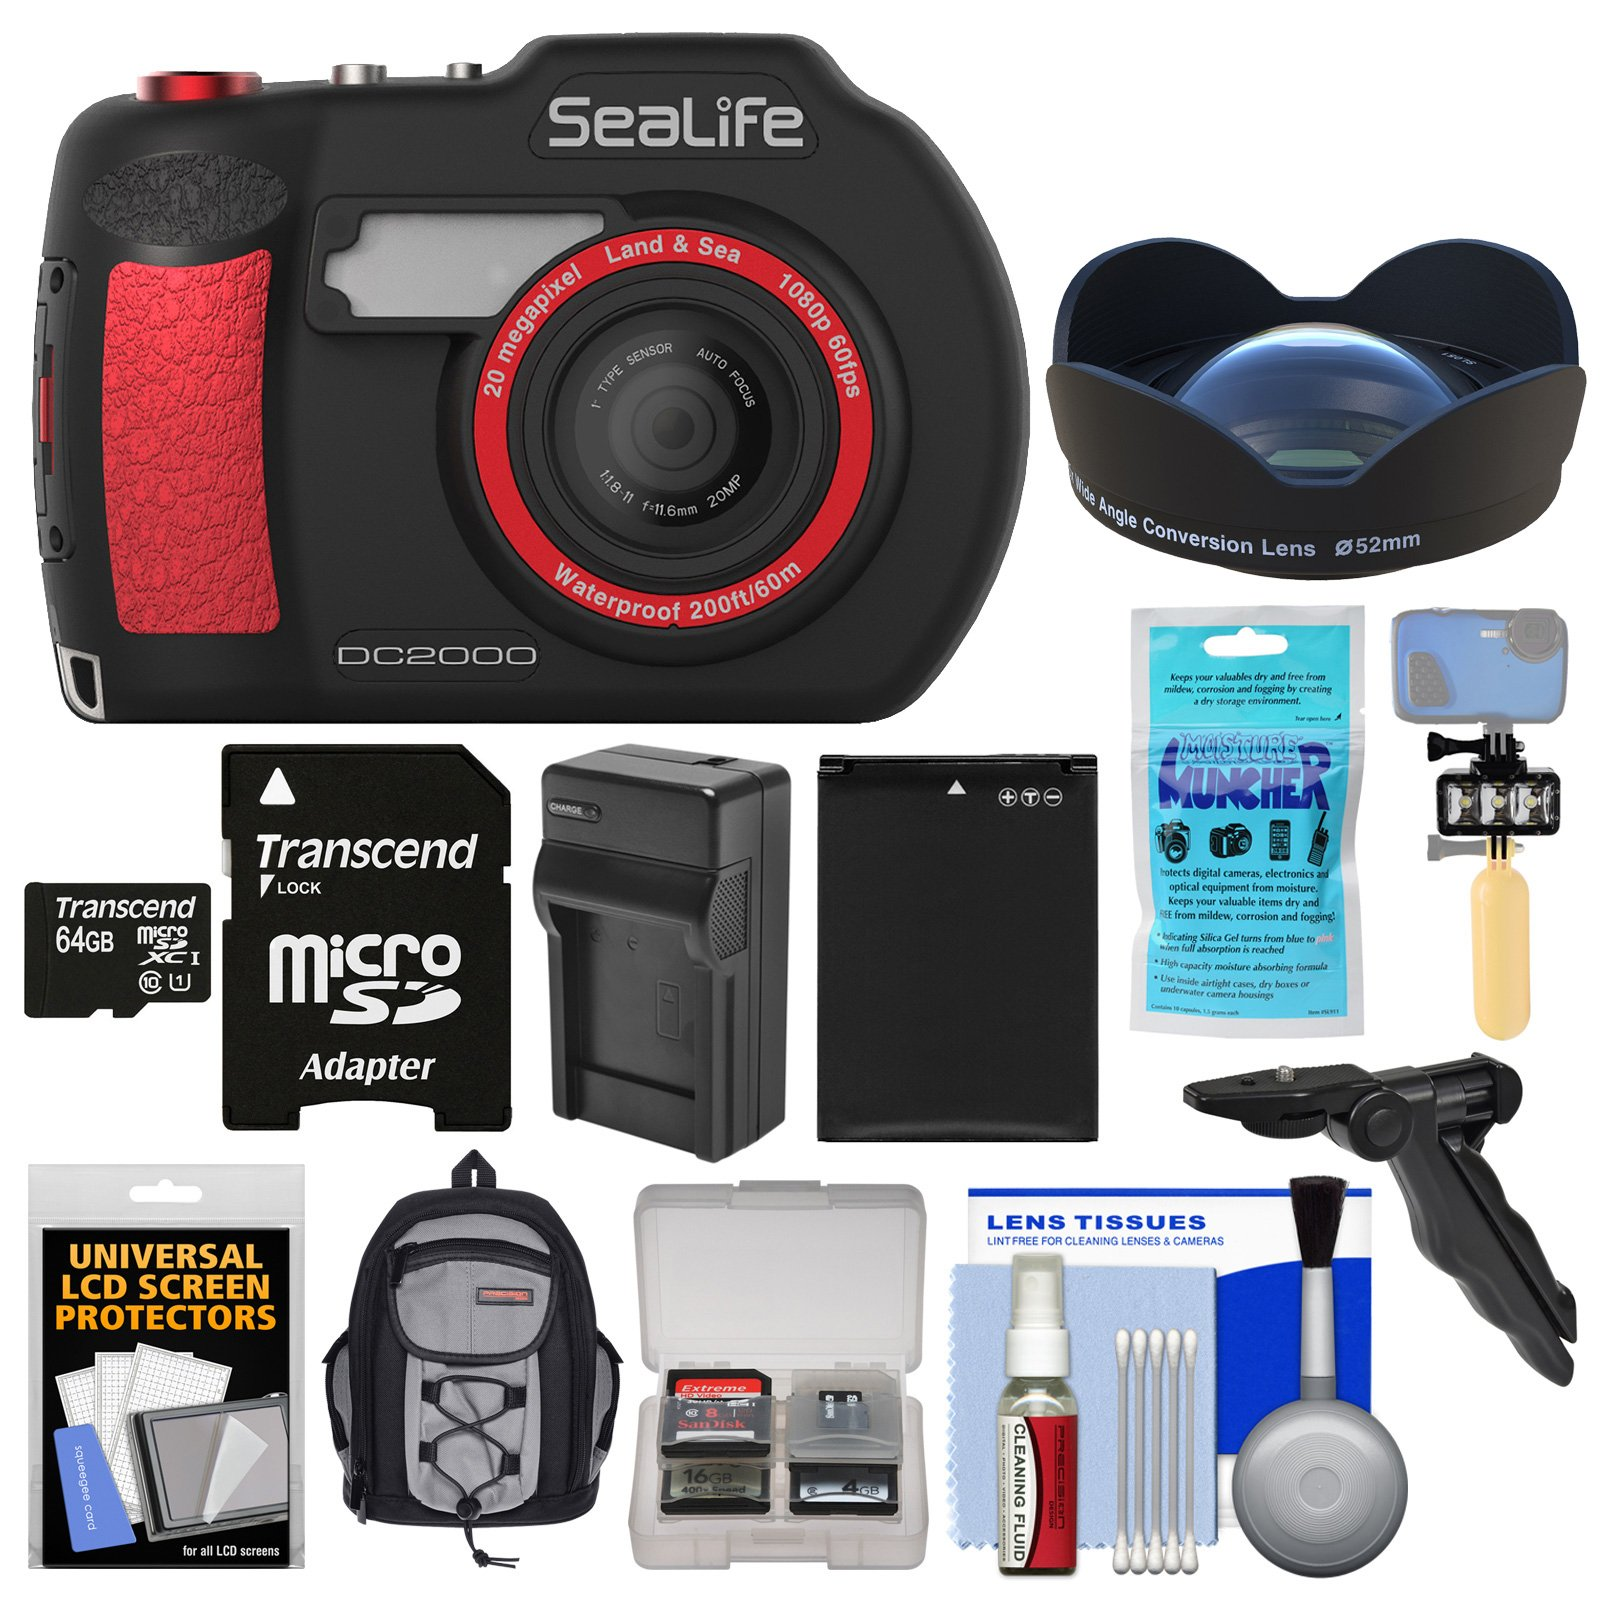 SeaLife DC2000 HD Underwater Digital Camera with Wide Angle Lens + 64GB Card + Backpack + Video Light + Buoy Handle + Battery + Kit by SeaLife